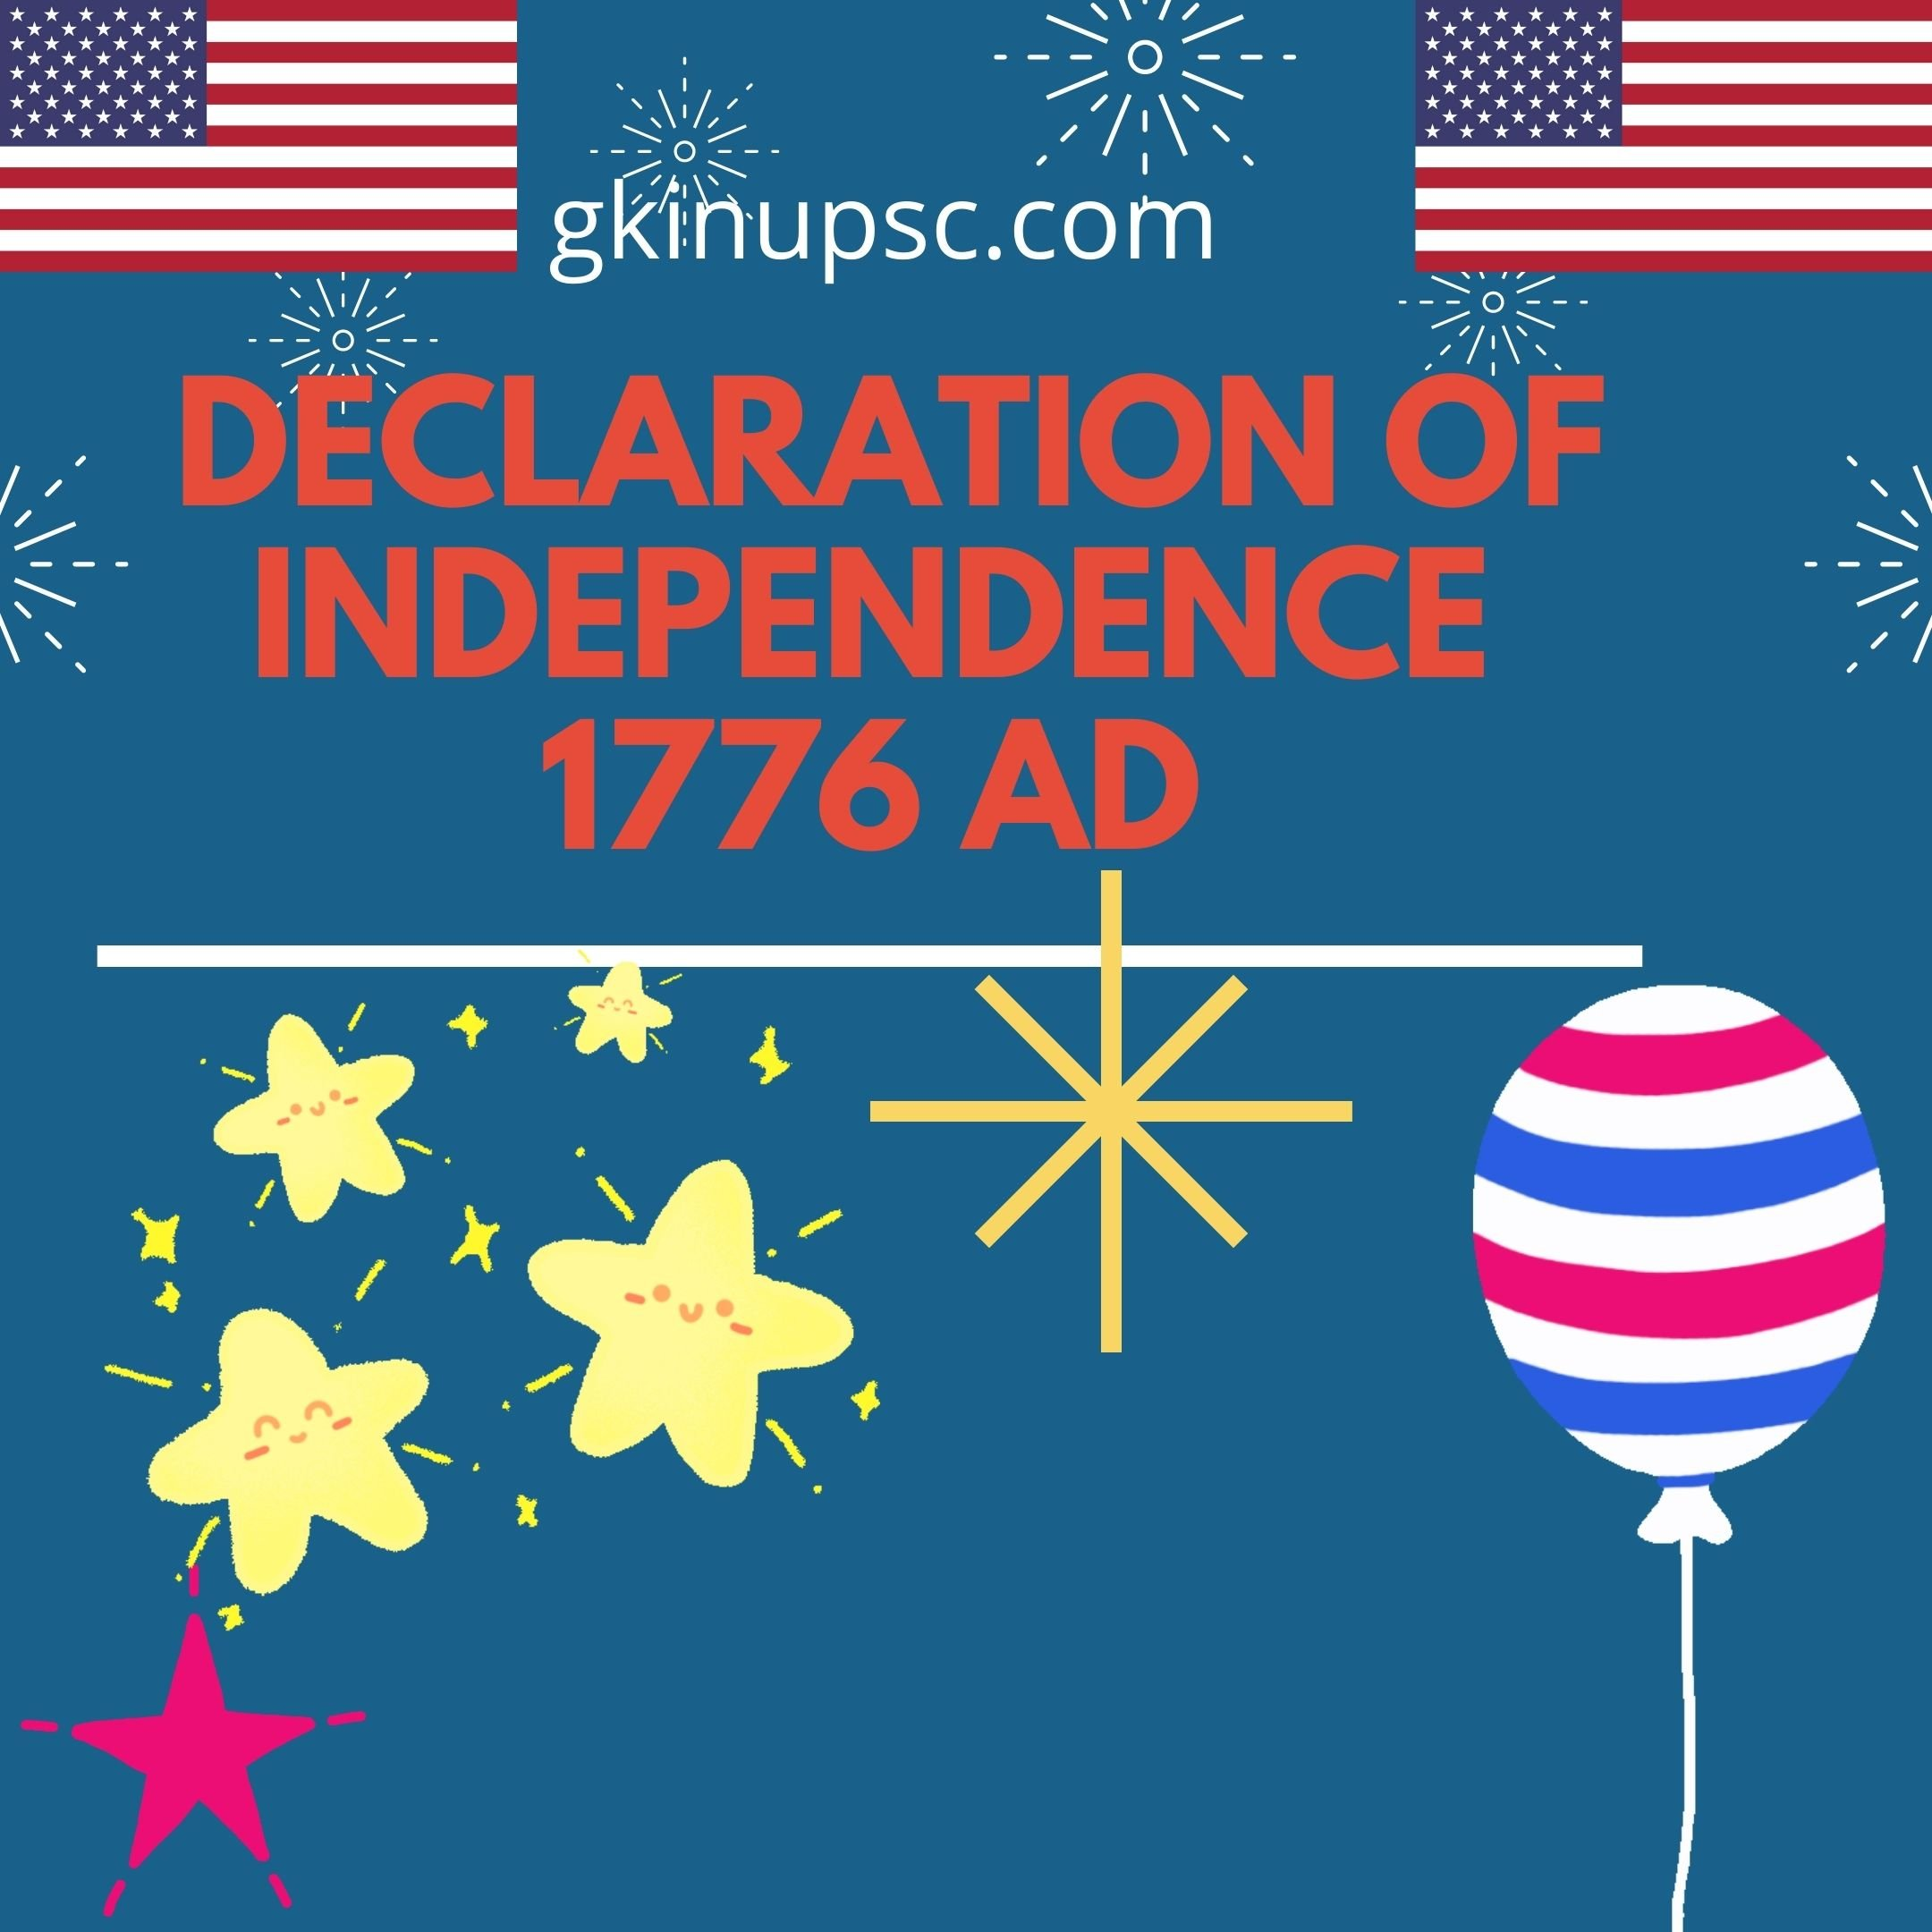 Declaration of Independence 1776 AD